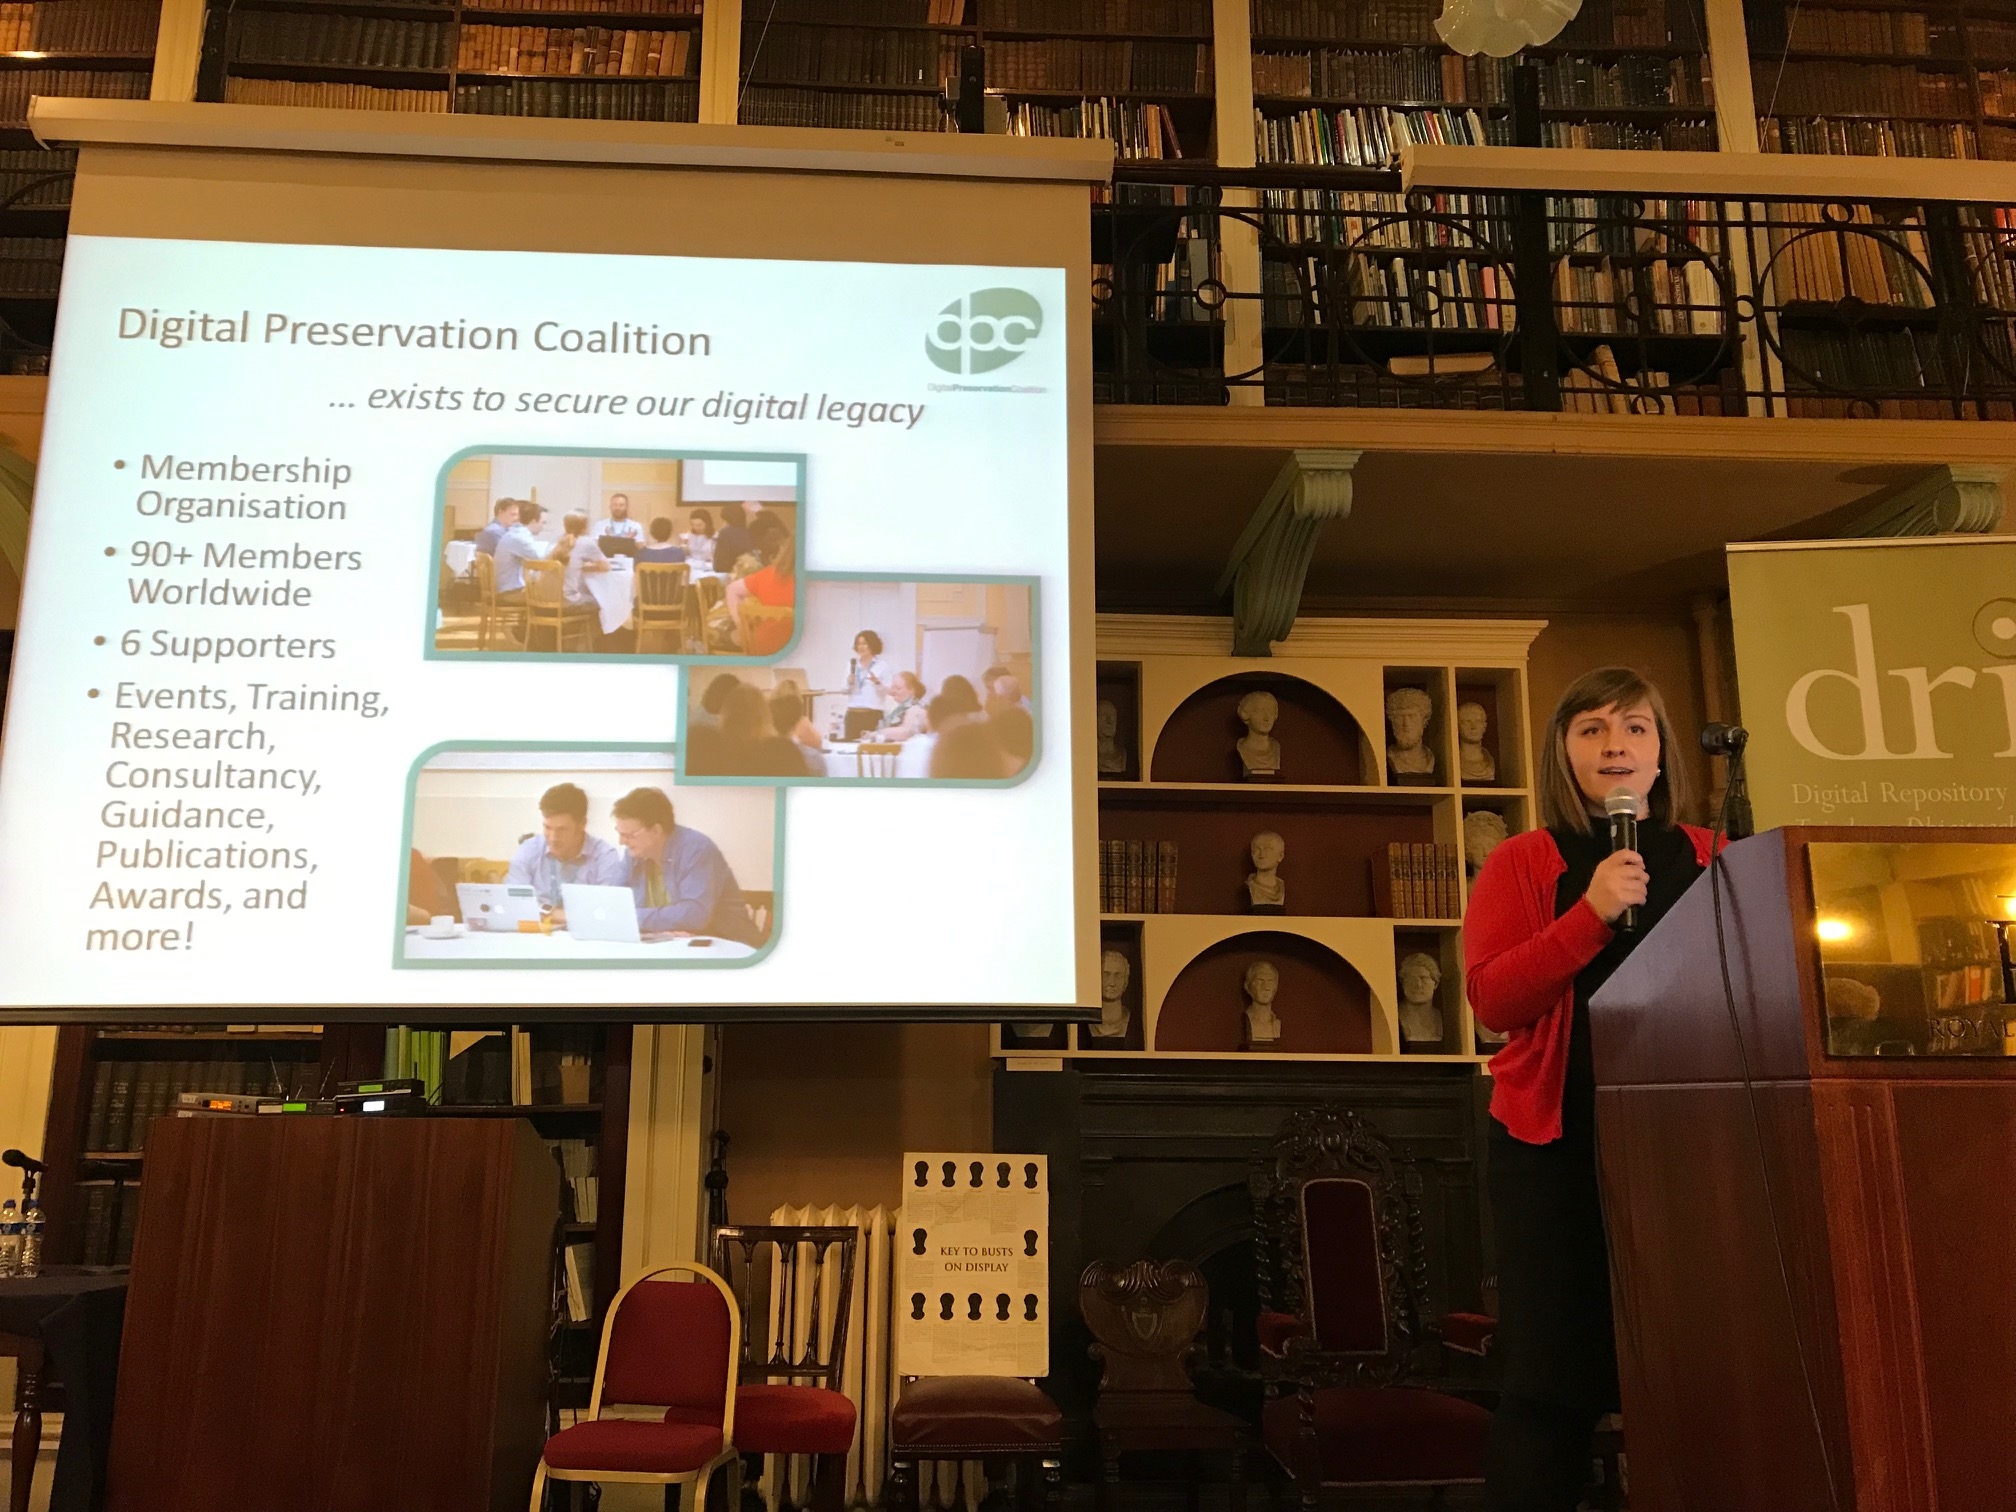 Sara Day Thomson of the Digital Preservation Coalition